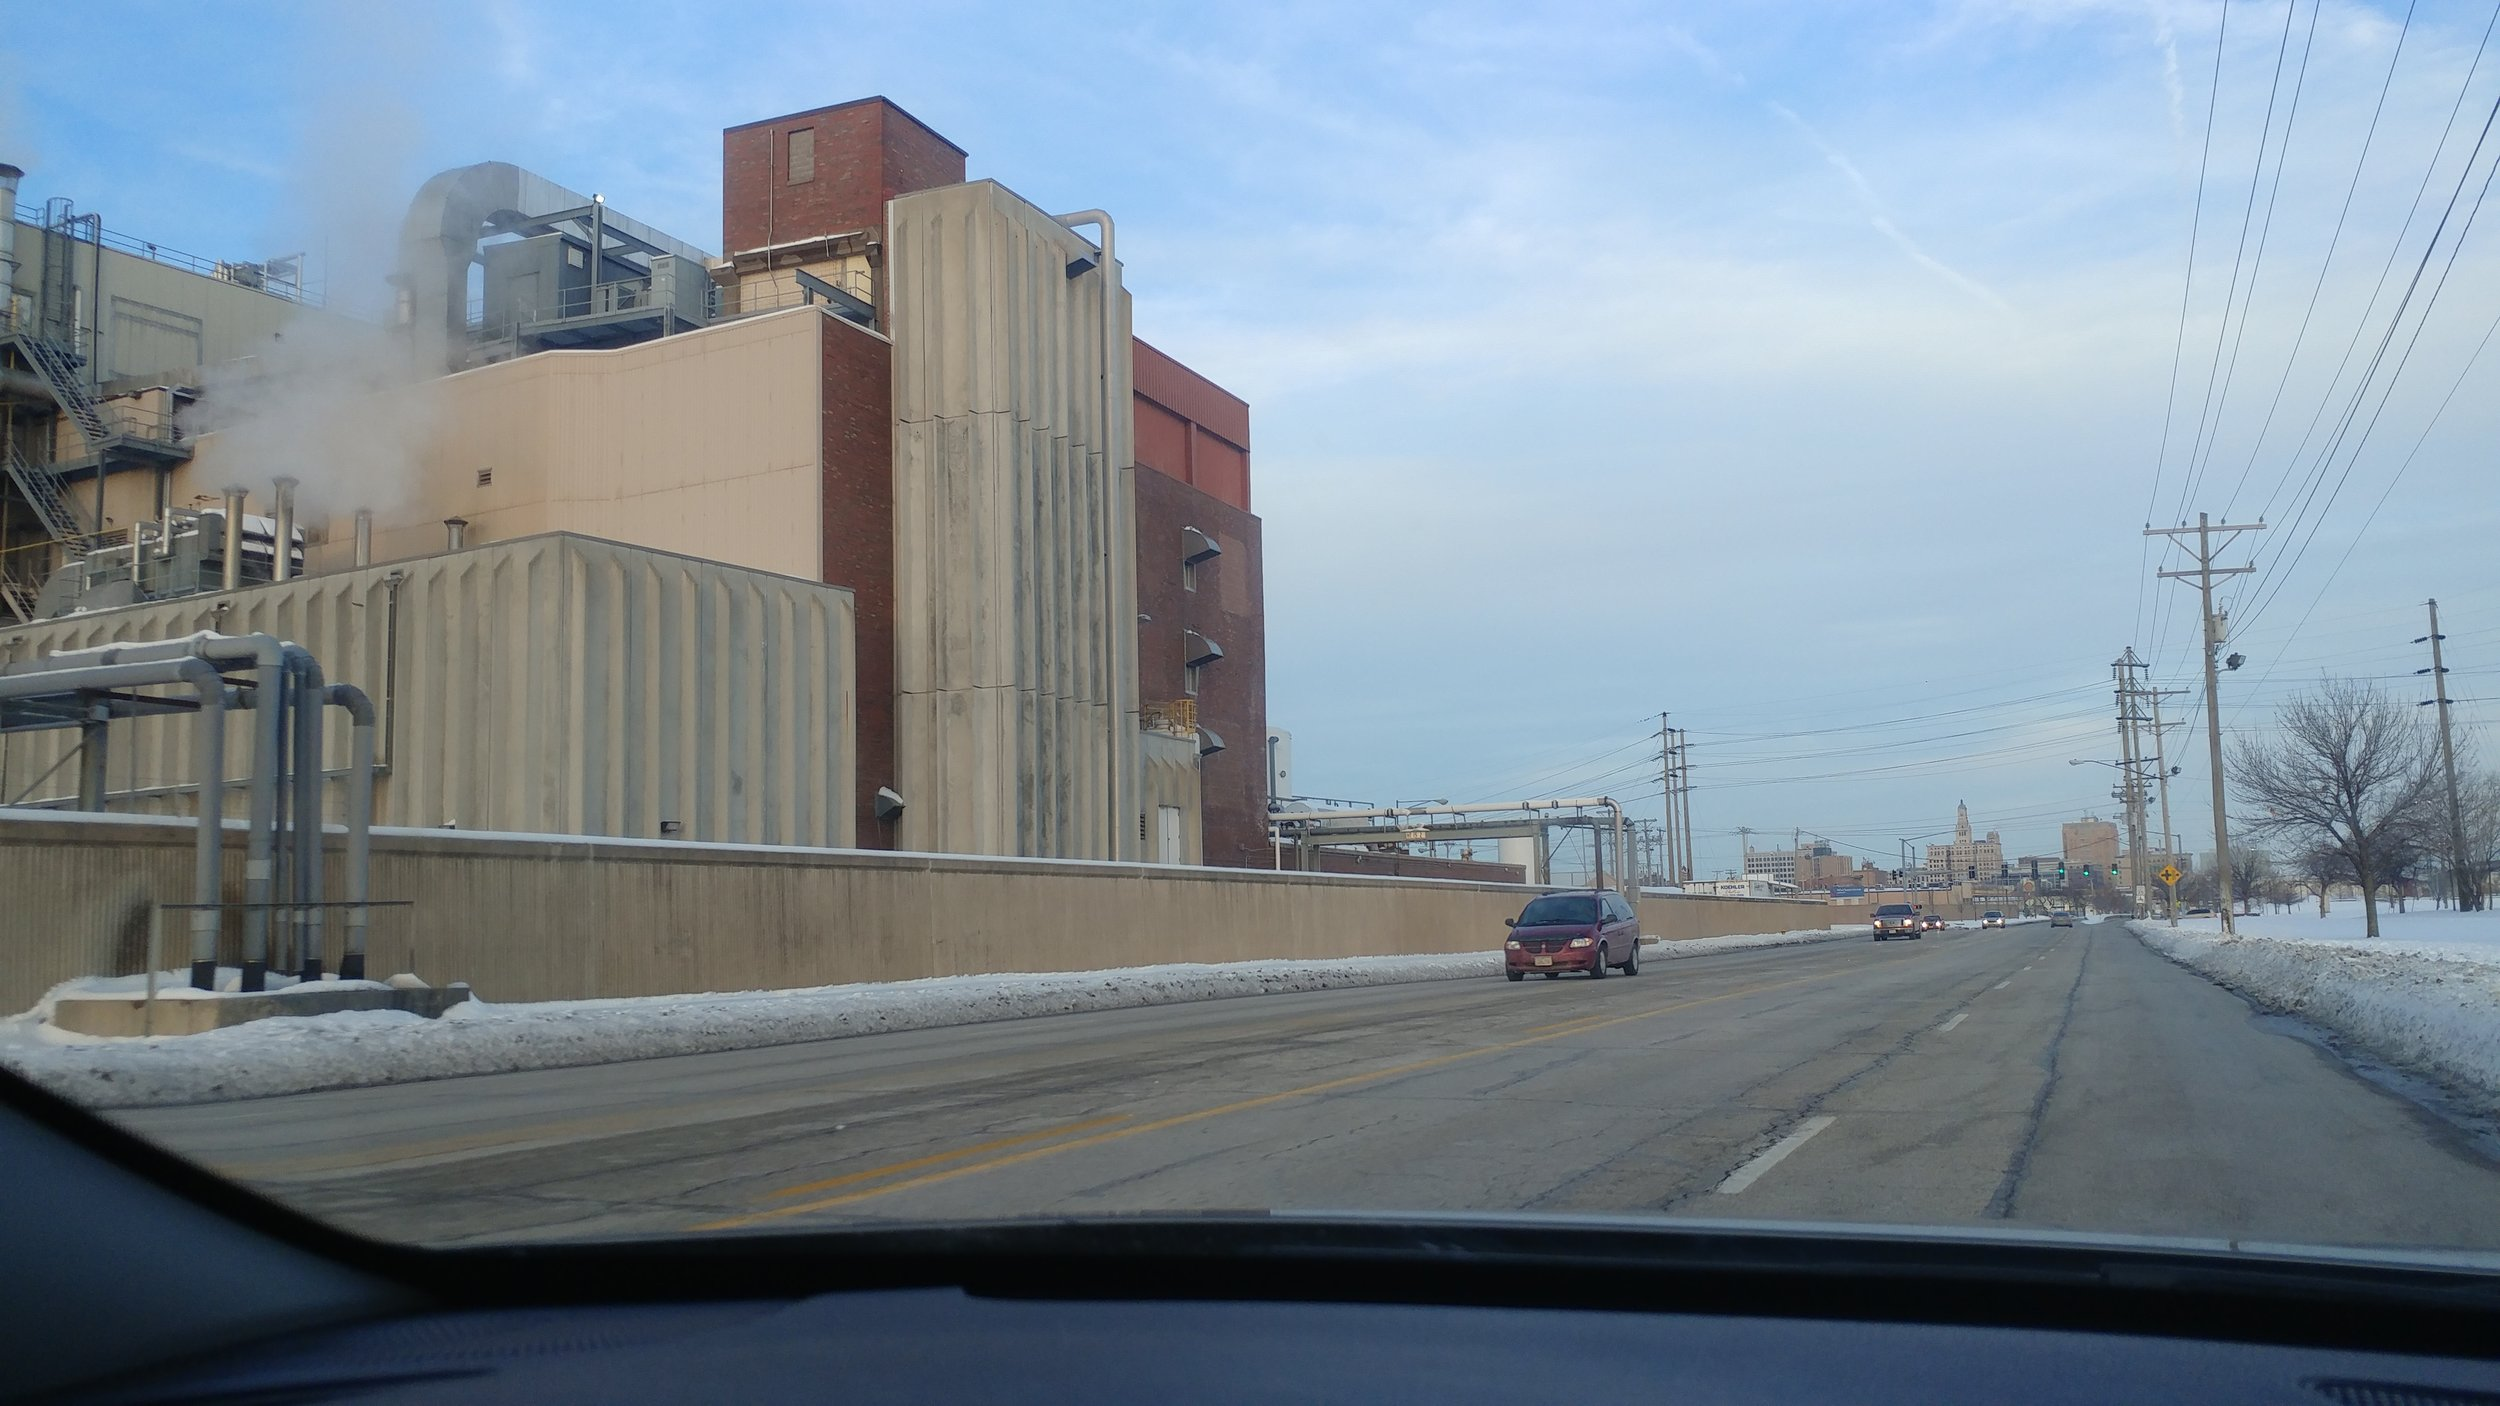 Kraft Food's Oscar Mayer plant in Davenport, IA as seen from River Drive on its southern border.